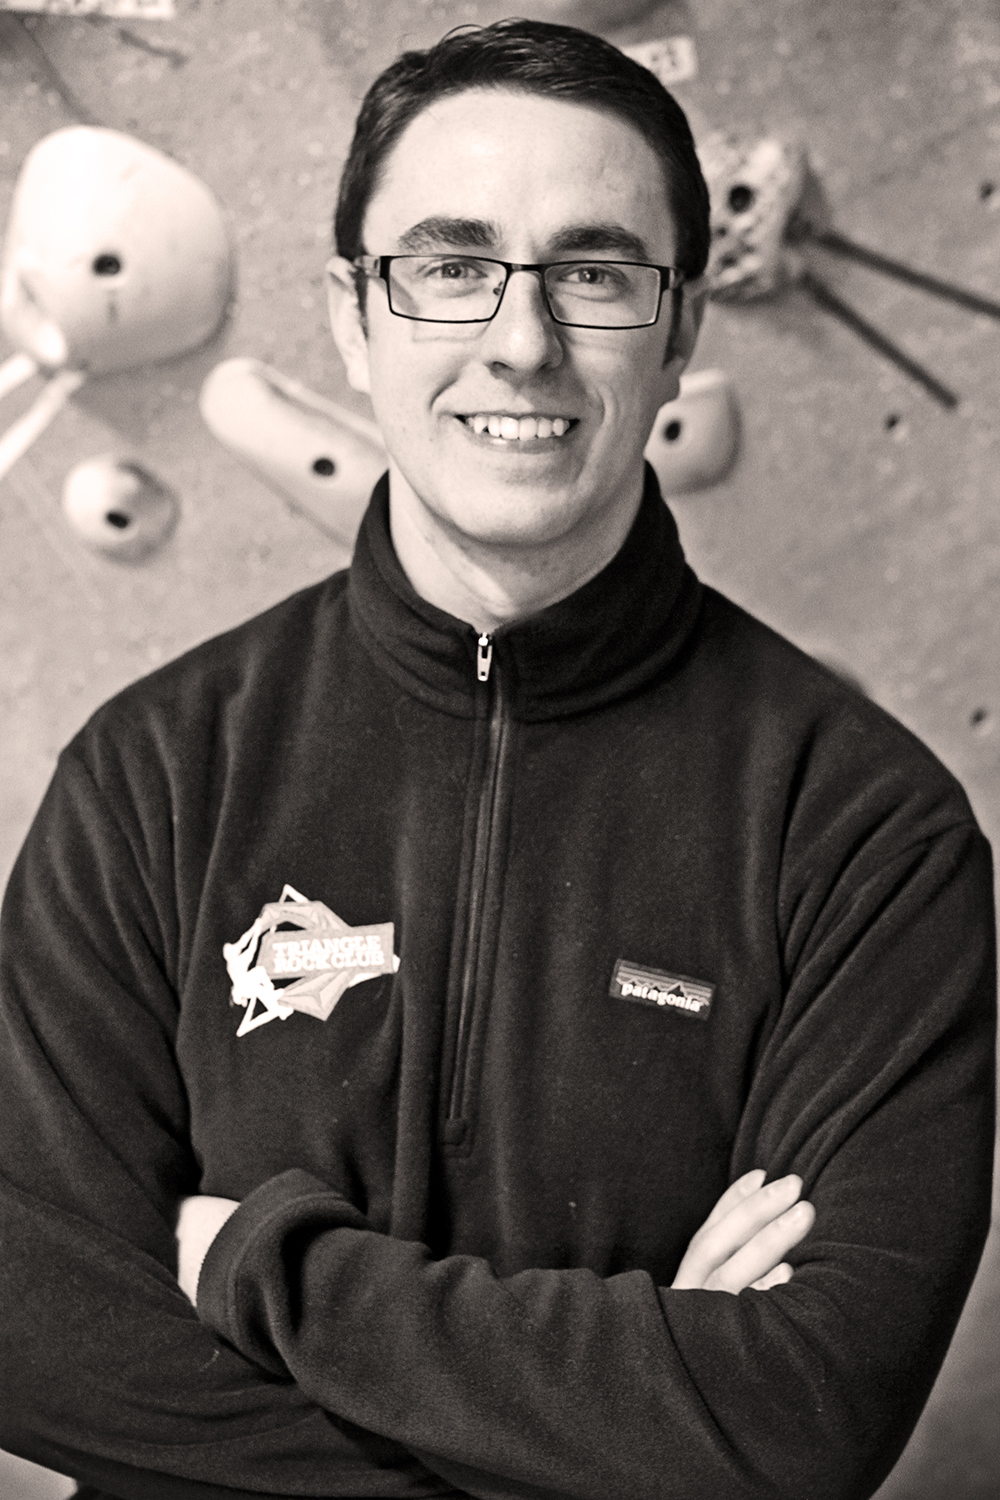 Mike St. Laurent - Climbing Club Director